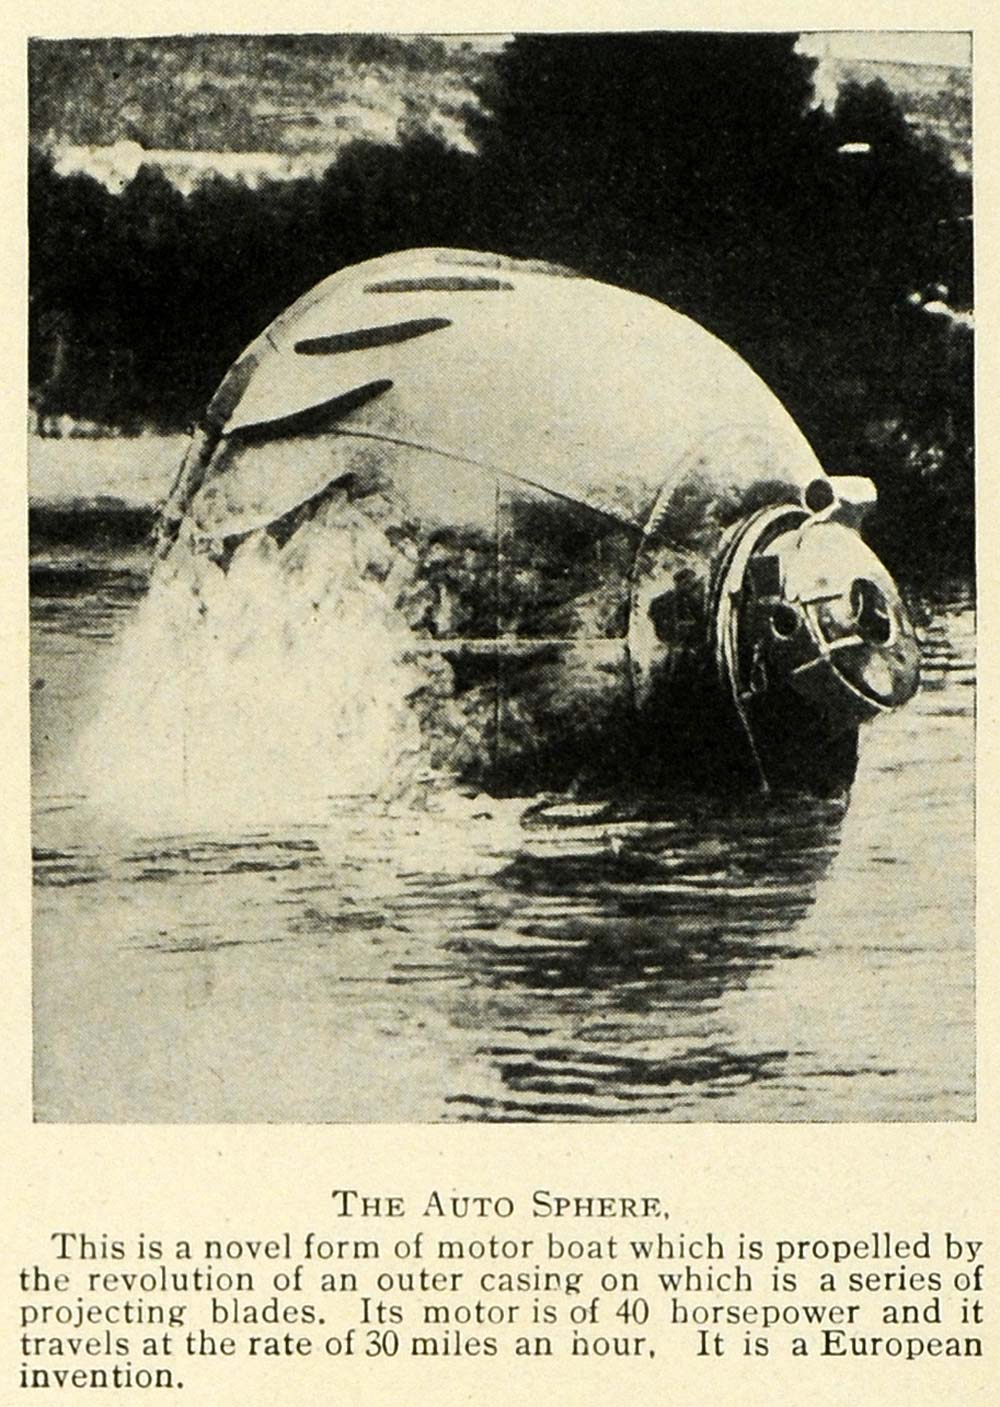 1912 Print Auto Sphere Motor Boat Invention Science Blade Sailing Research TW4